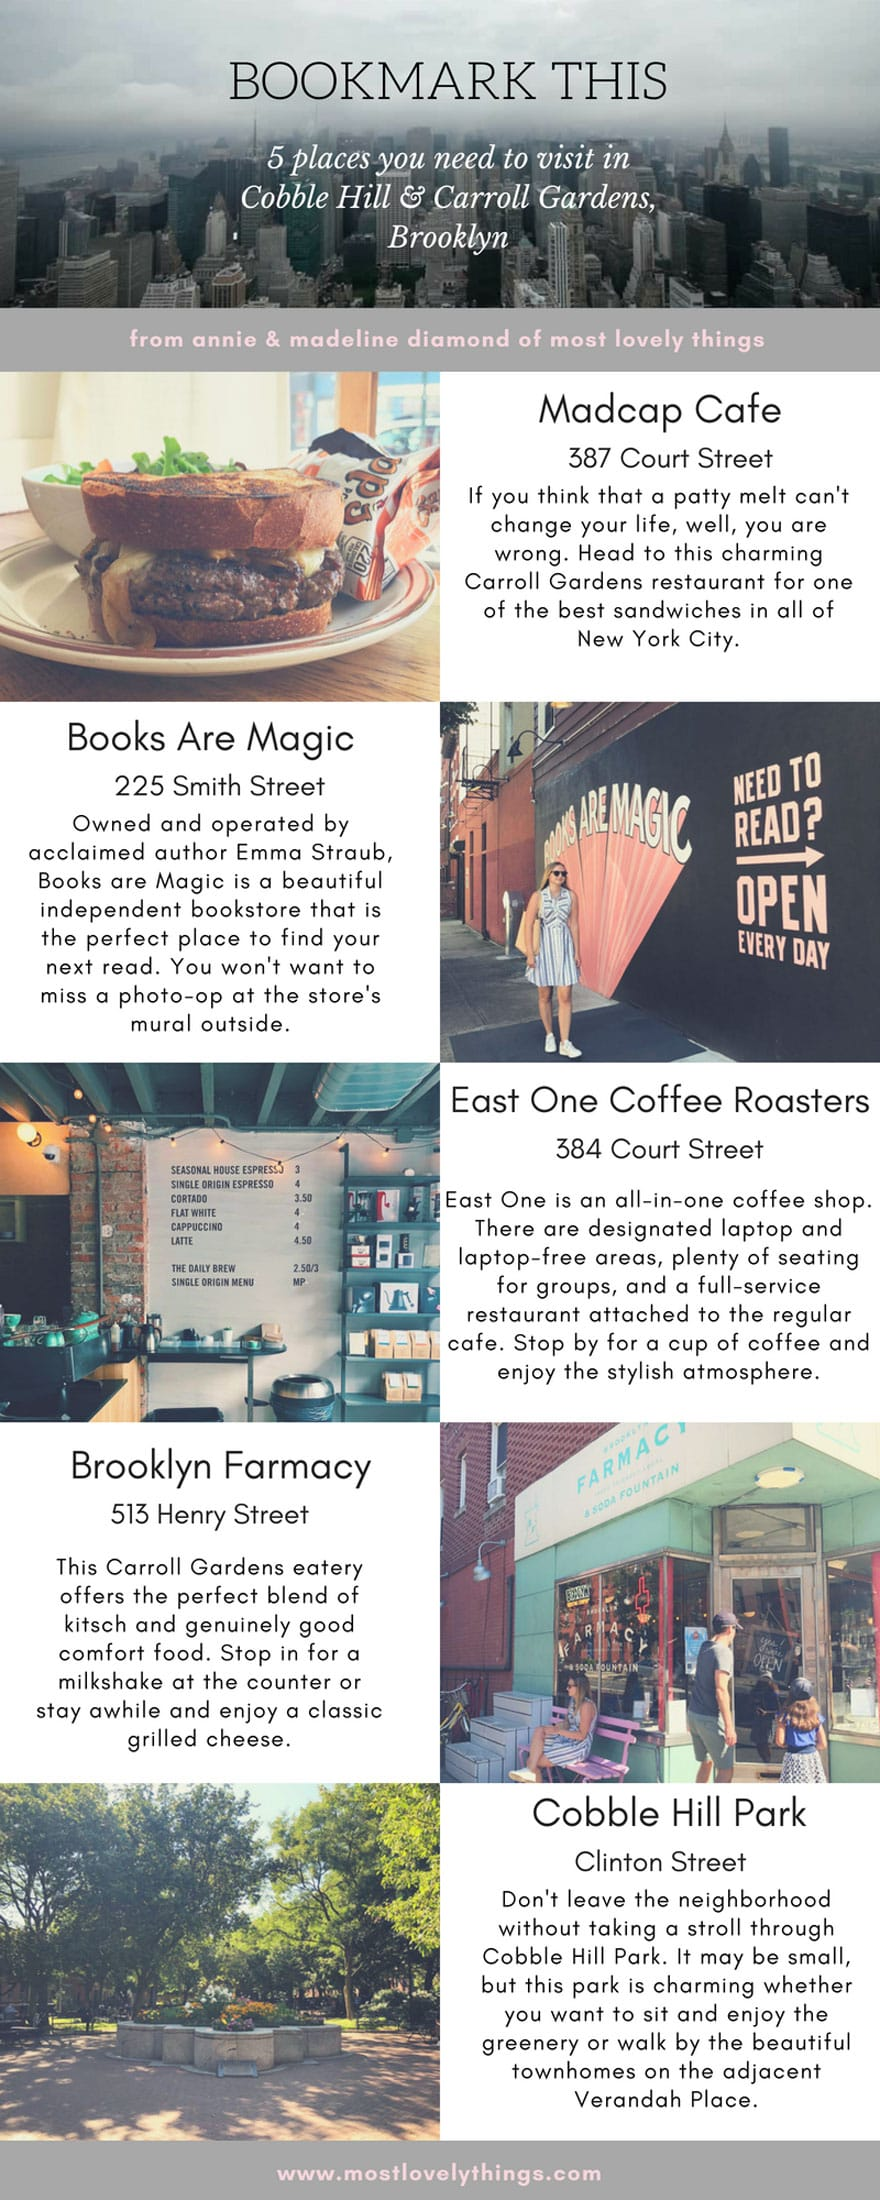 collage with book store/coffee shops/sign/store front and text in boxes